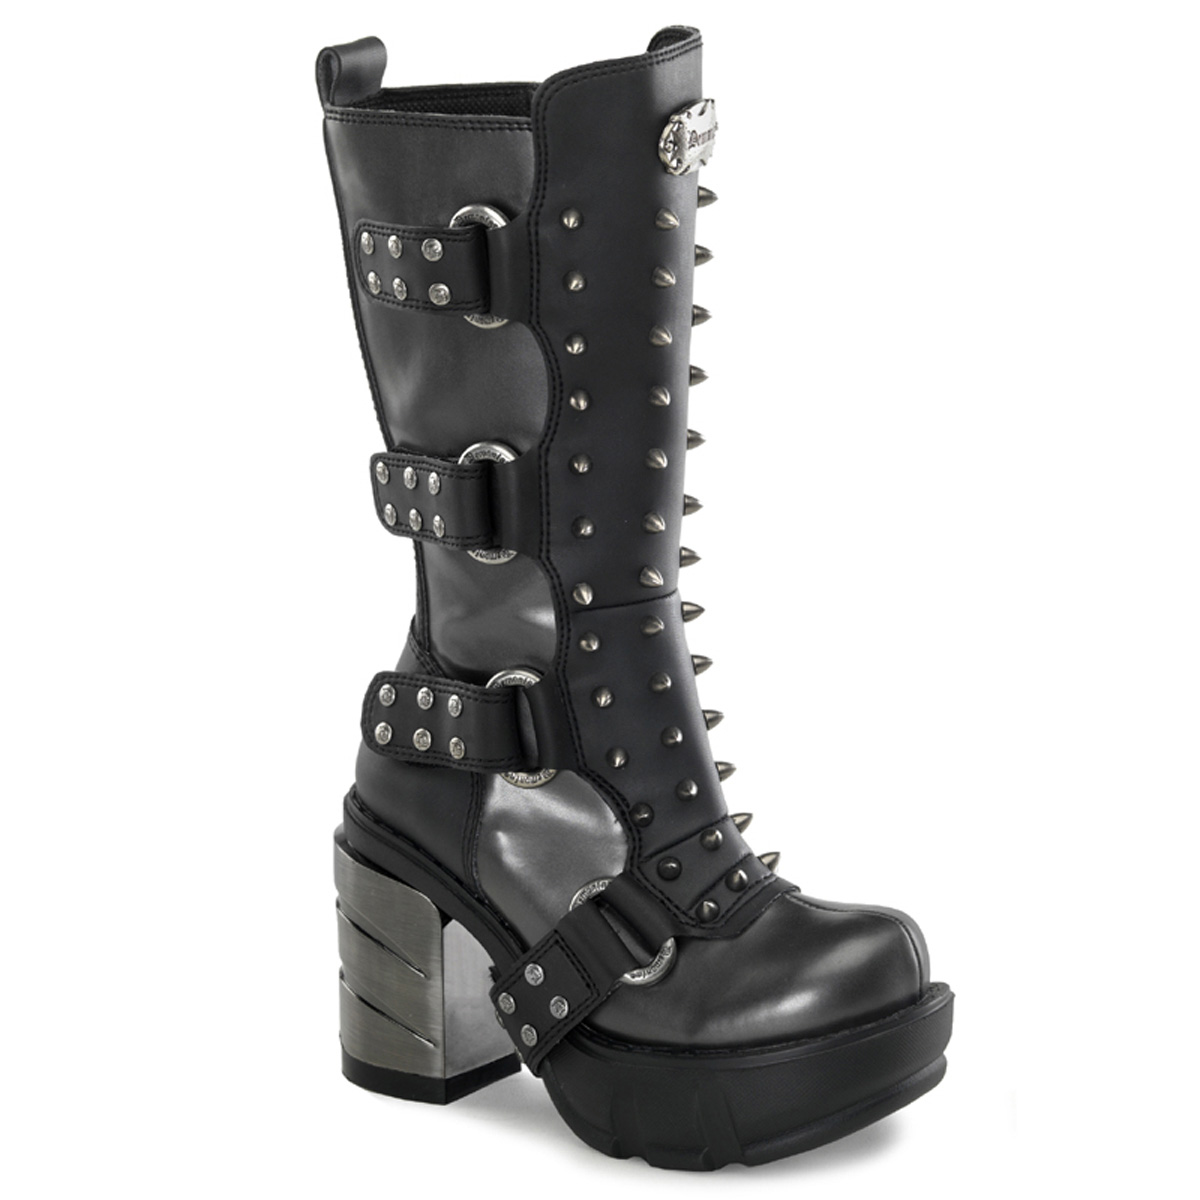 "DEMONIA  SINISTER-202 Women's 3 1/2"" Chromed ABS Heel, 1 1/2"" Moulded Pu PF Calf Boots/D.Gray-Blk Pu"